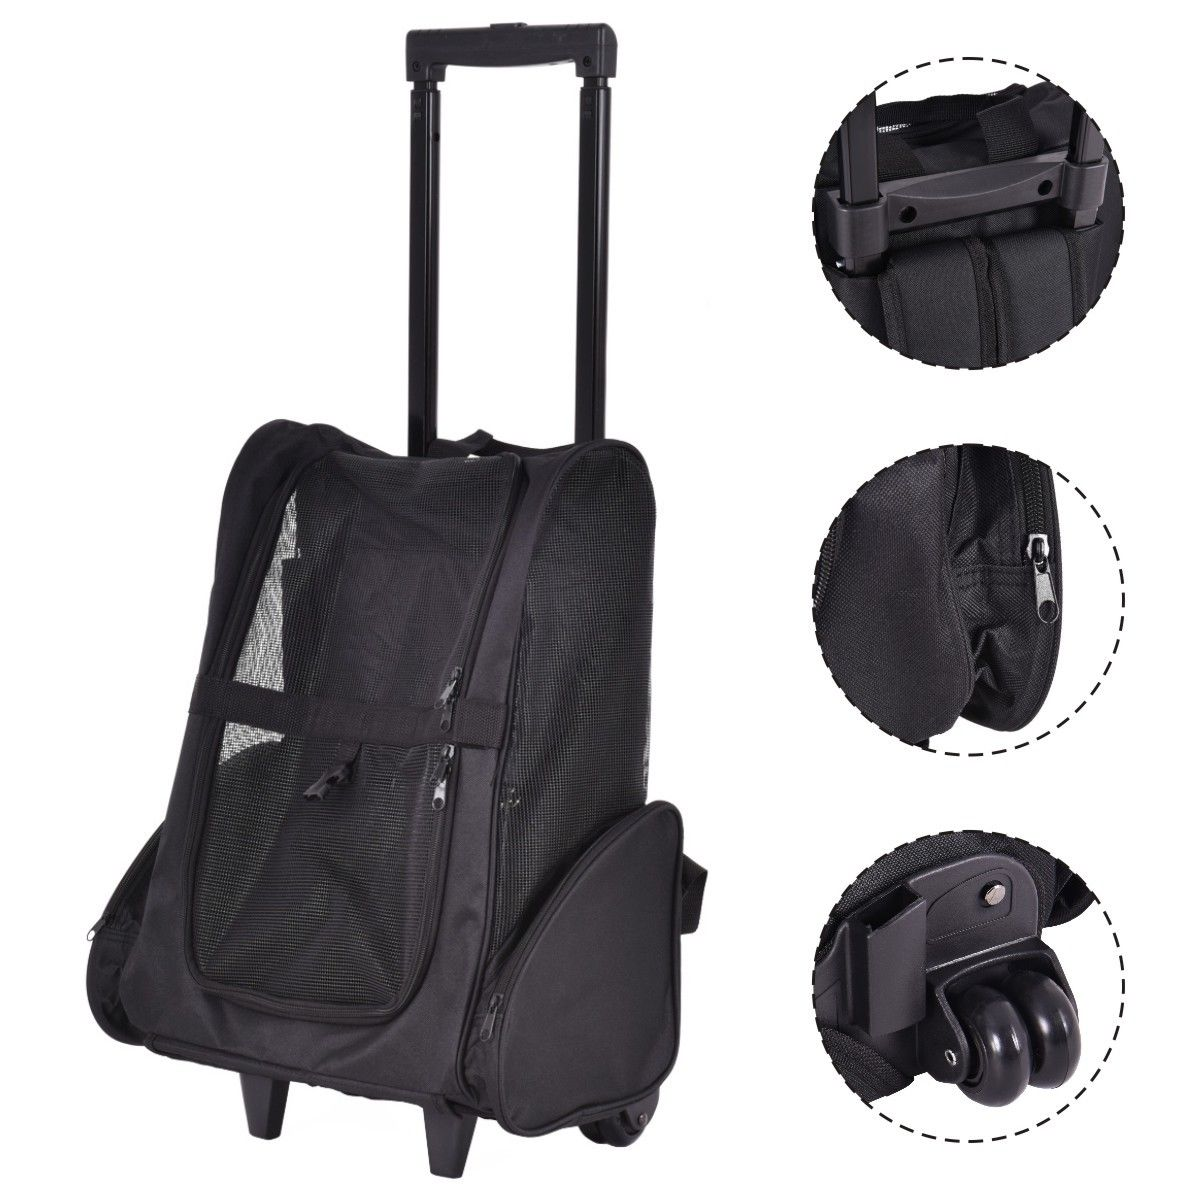 Costway 4 Color Pet Carrier Dog Cat Rolling Back Pack Travel Airline Wheel Luggage Bag by Costway